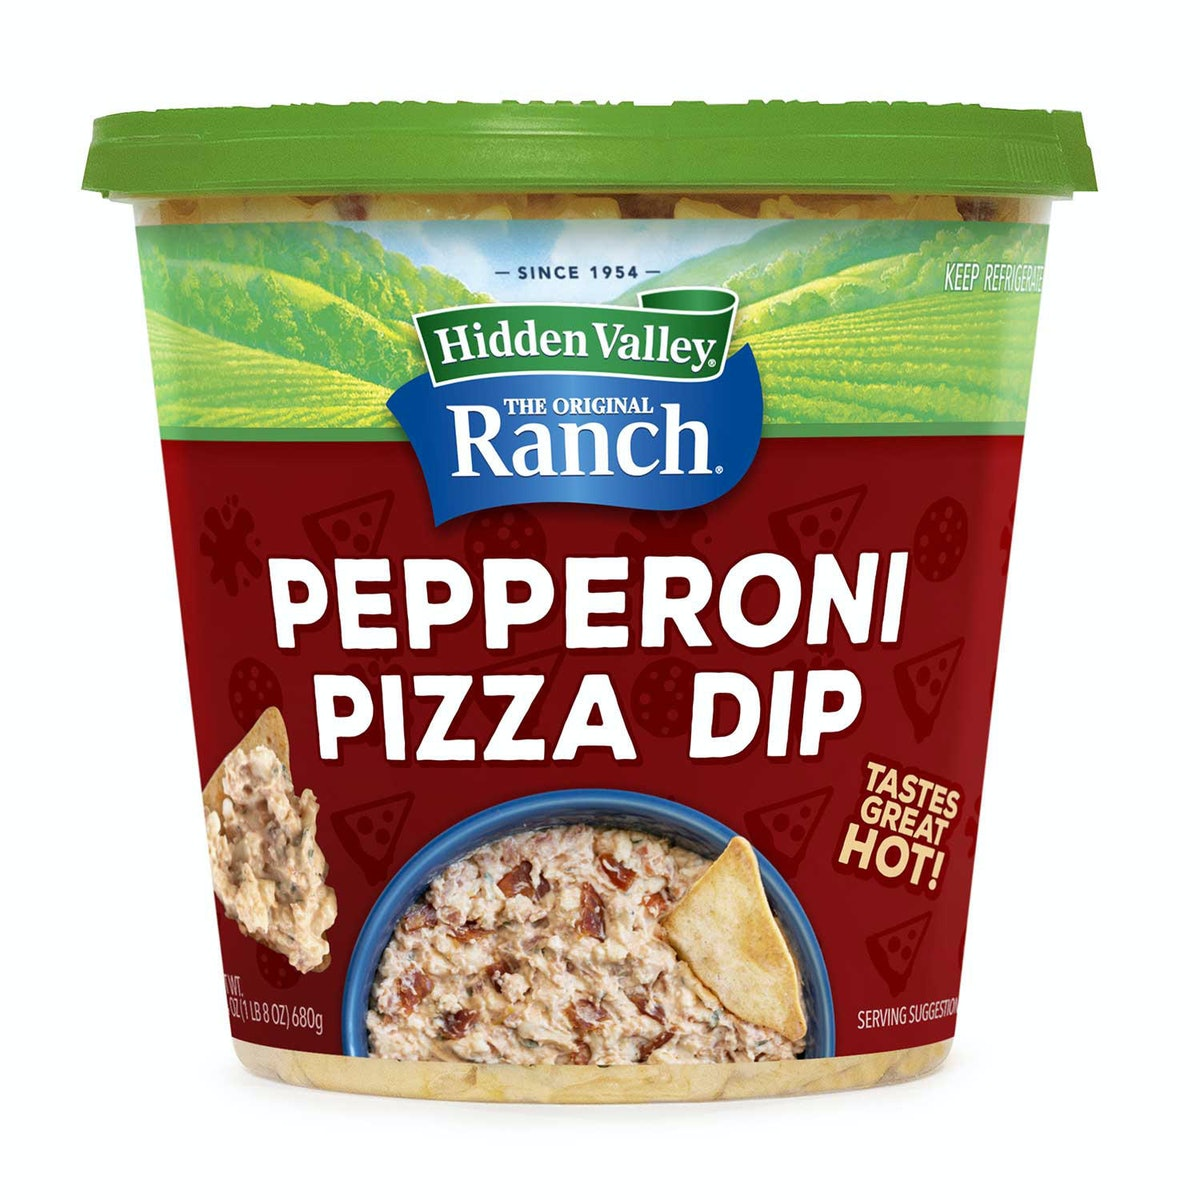 Sam's Club is selling a Ranch Pepperoni Pizza Dip.